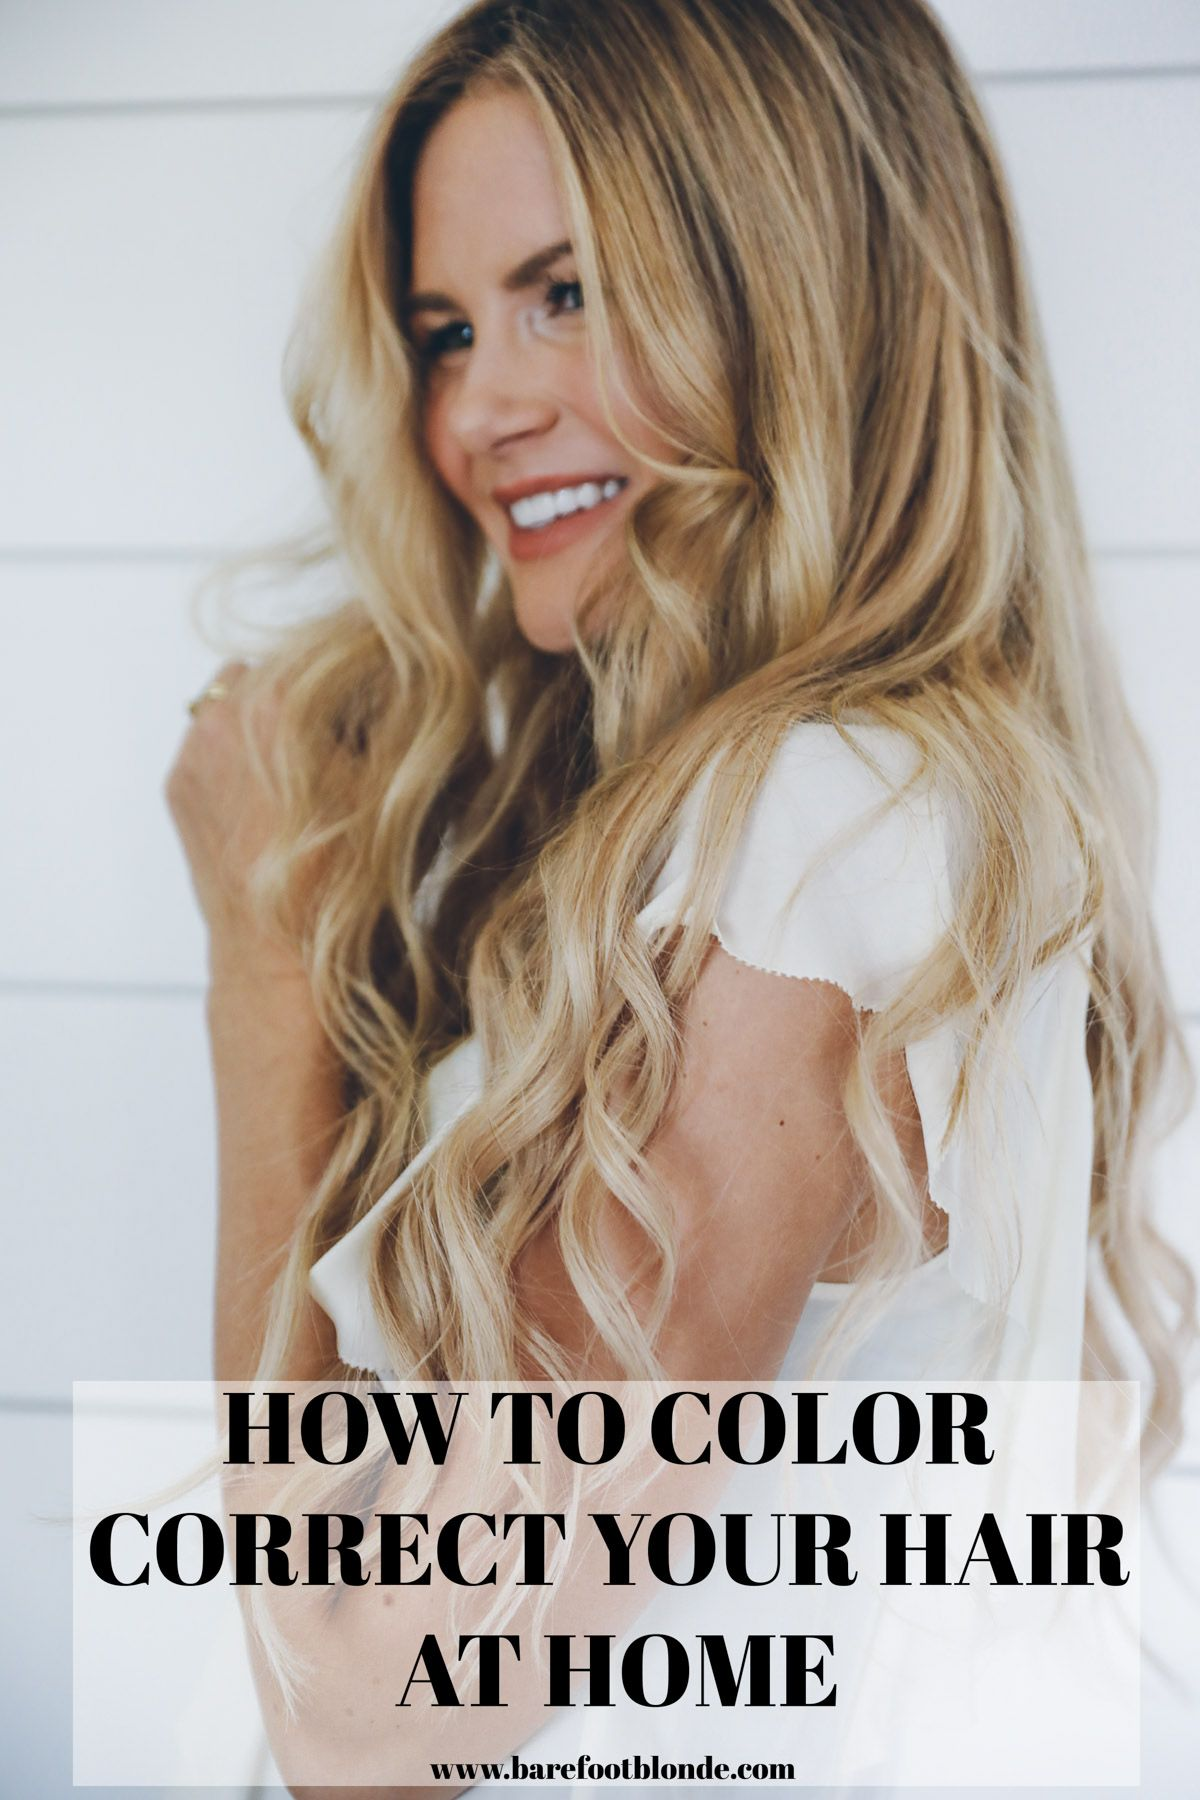 How to color correct u maintain your hair color at home barefoot